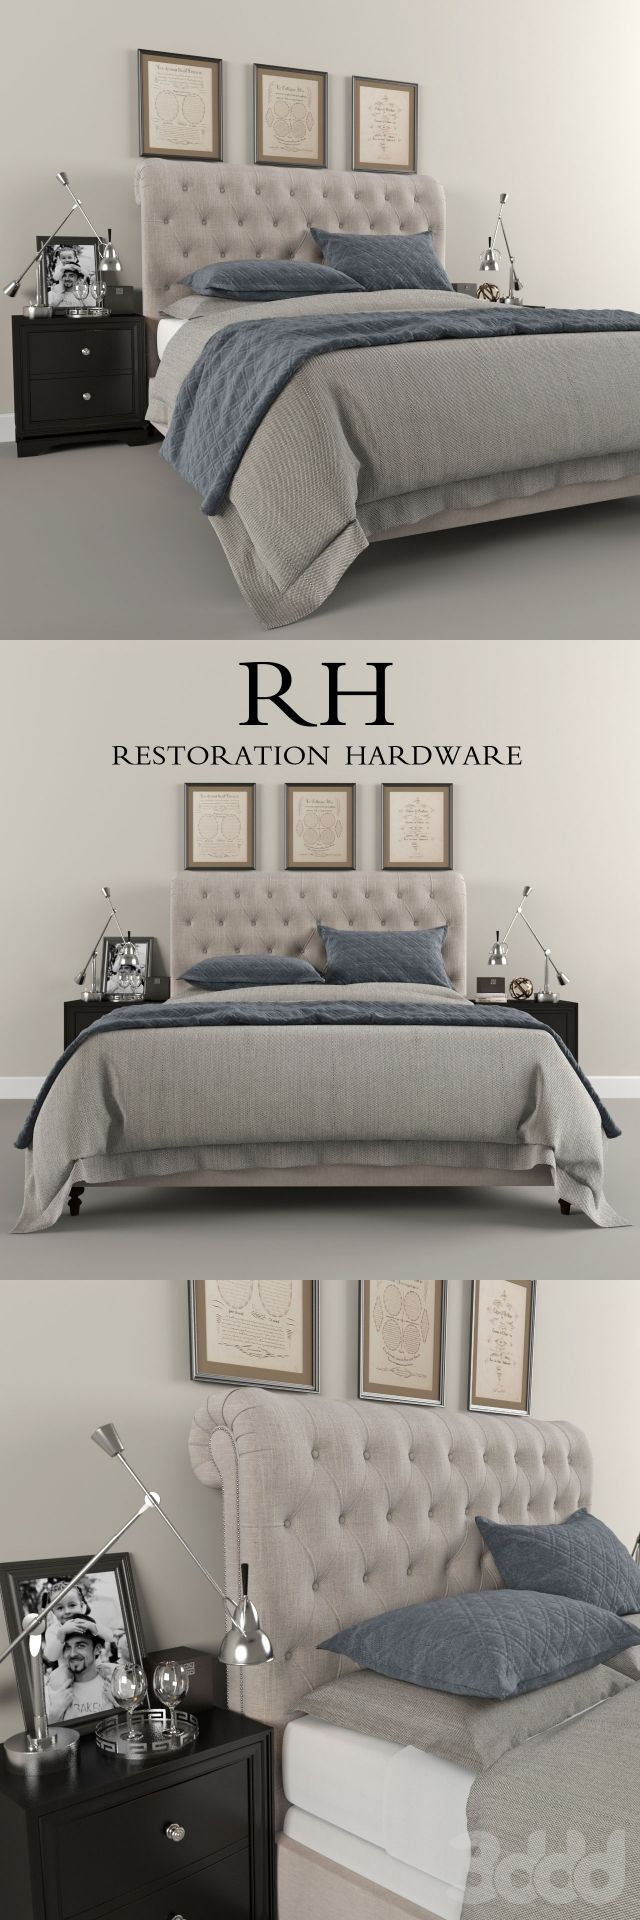 Restoration hardware sleigh chesterfield fabric bed 3d models pinterest chesterfield Bedroom furniture chesterfield